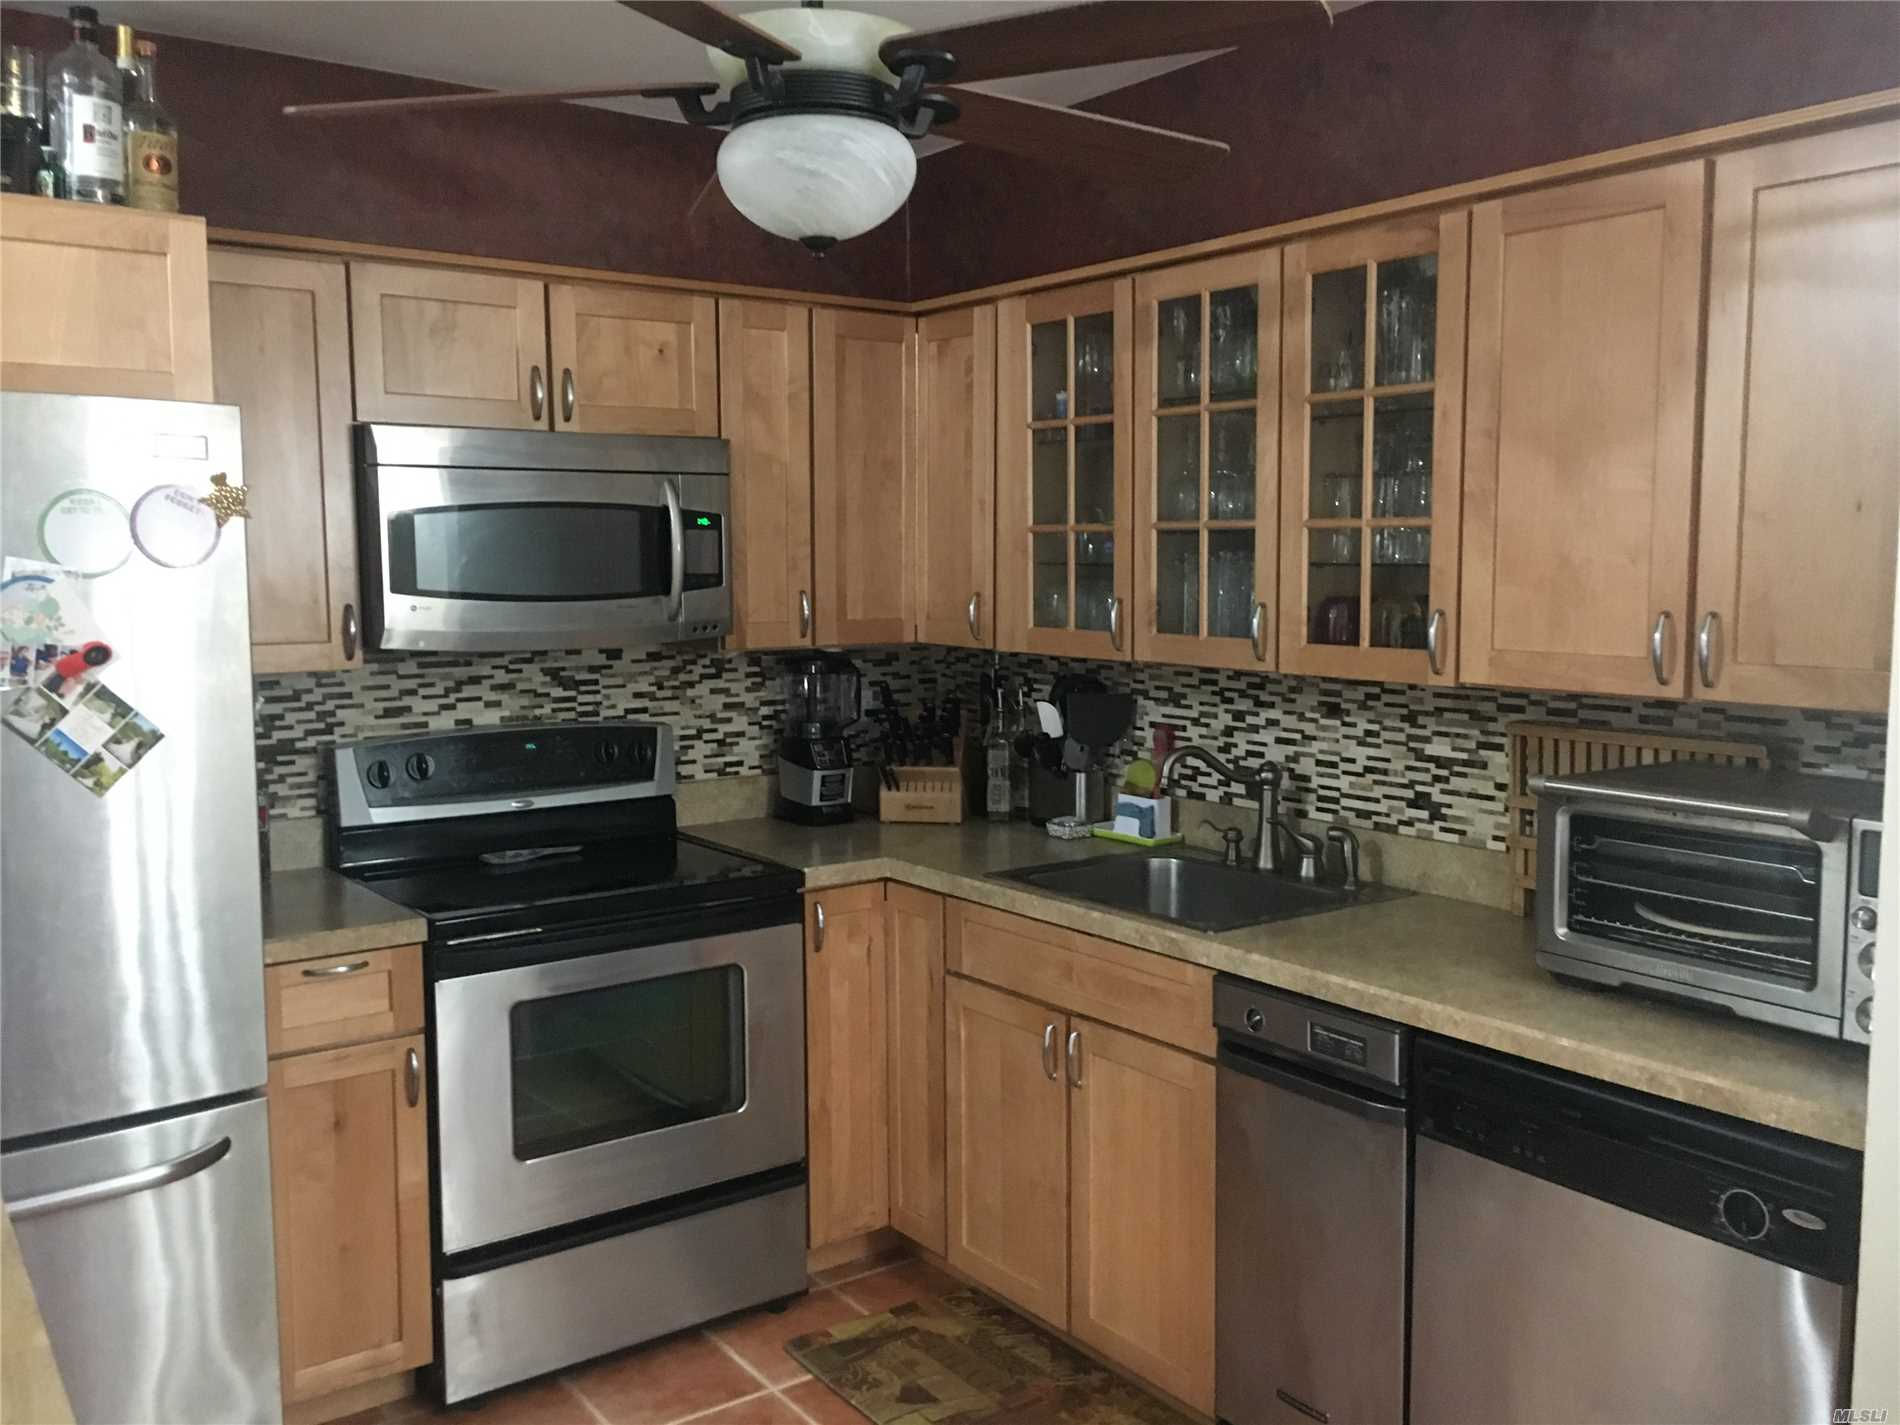 Updated Windows, Kitchen Cabinets, Baths And More. One Month Rent, One Month Security, And One Month Realtor Fee. Credit Report And References Required With Offer